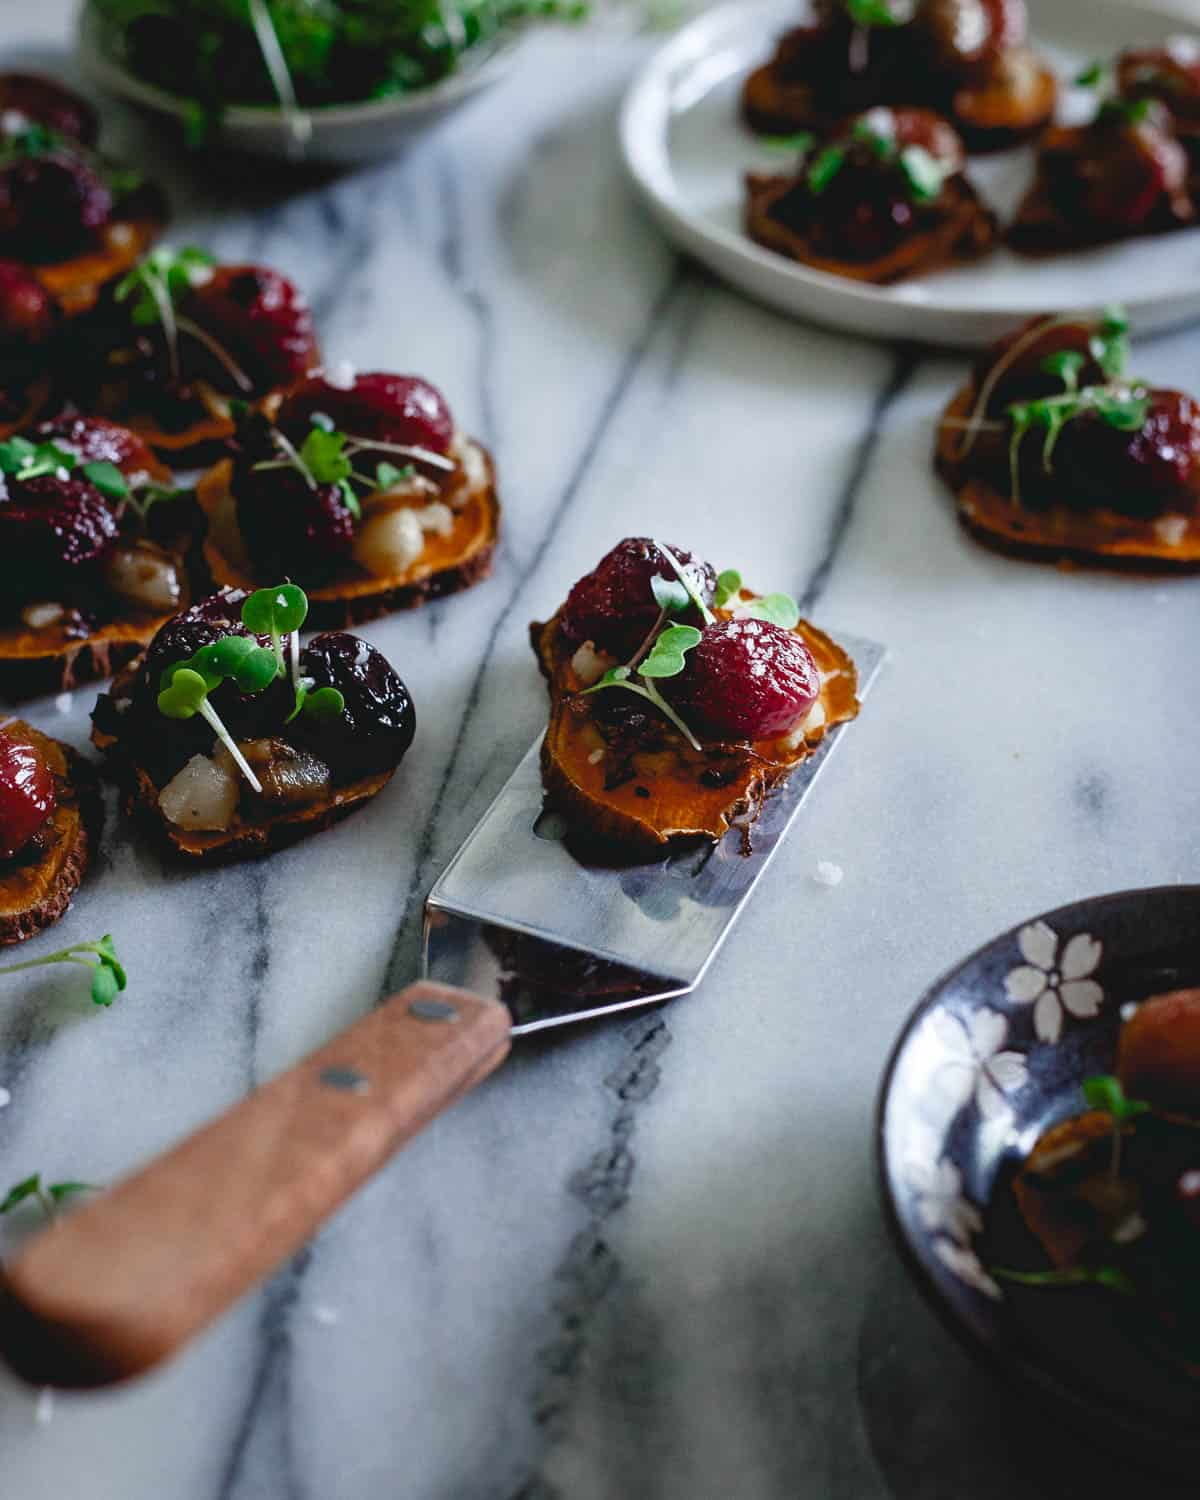 A party appetizer everyone can enjoy, these vegan, gluten-free sweet potato crostini have both sweet grapes and savory caramelized onions with a hint of spice. They're a flavor explosion!